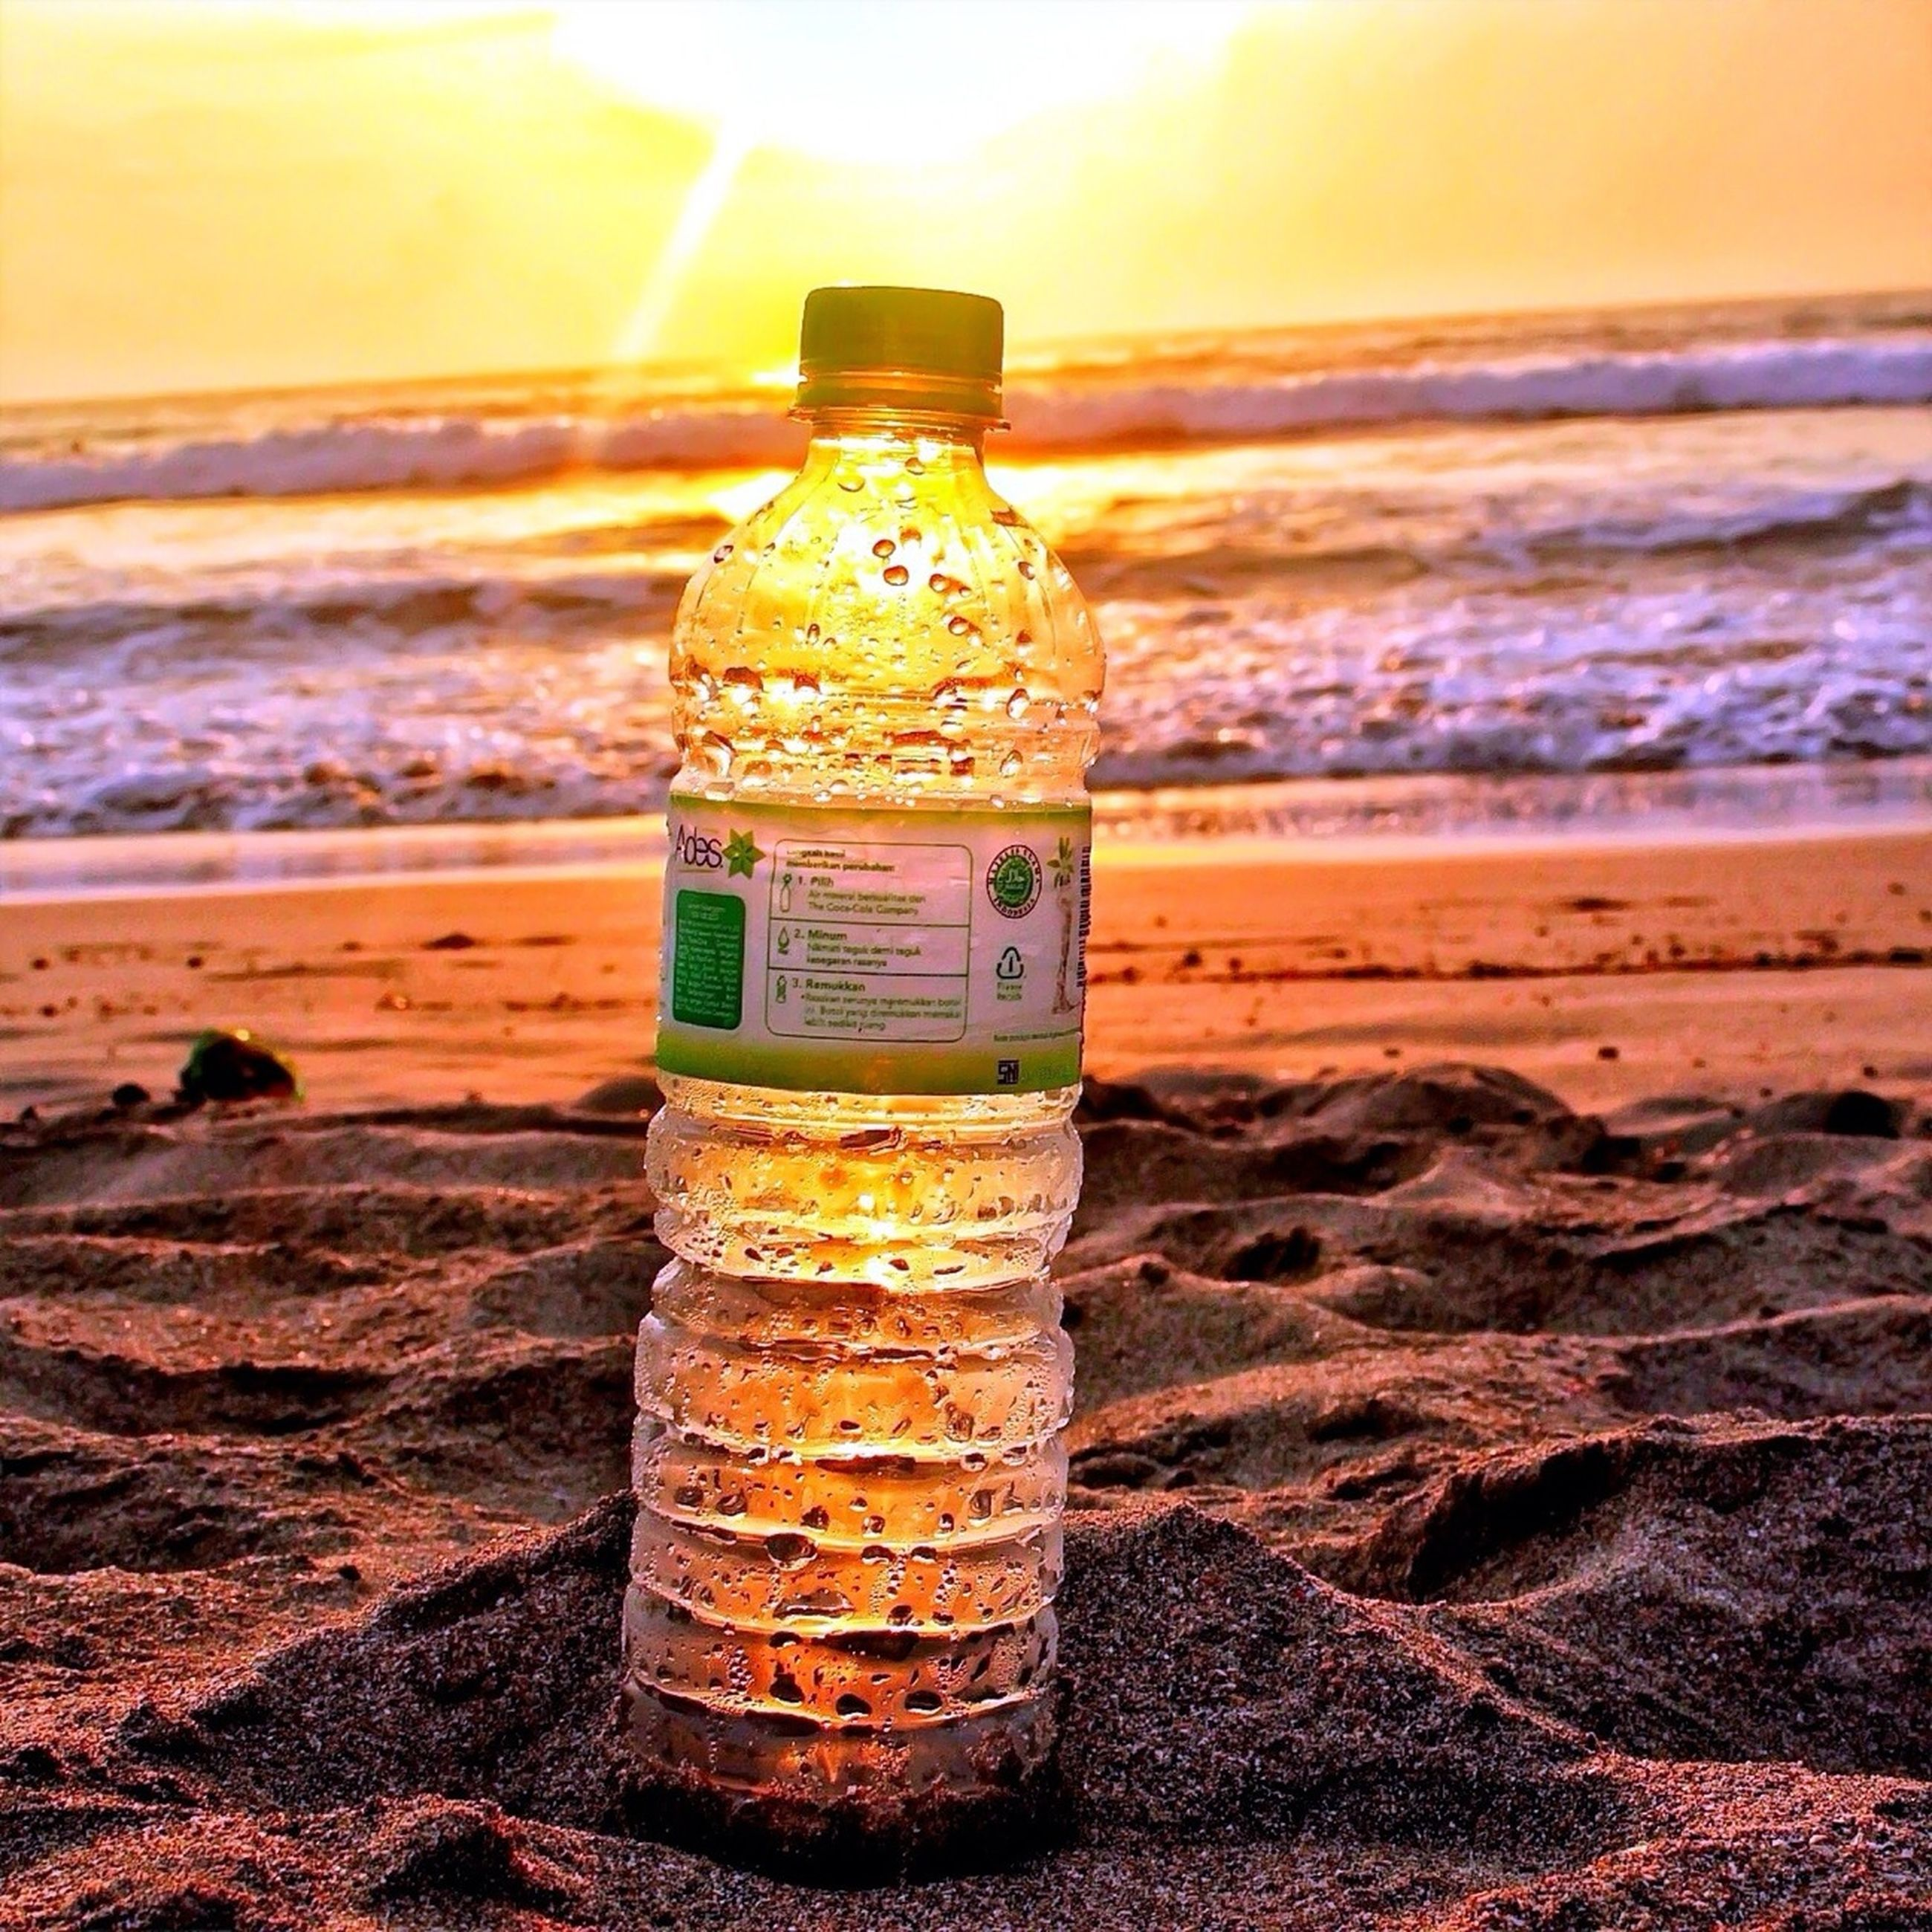 beach, sea, sand, horizon over water, shore, sunset, sunlight, close-up, water, focus on foreground, no people, nature, outdoors, tranquility, sky, scenics, beauty in nature, day, tranquil scene, metal